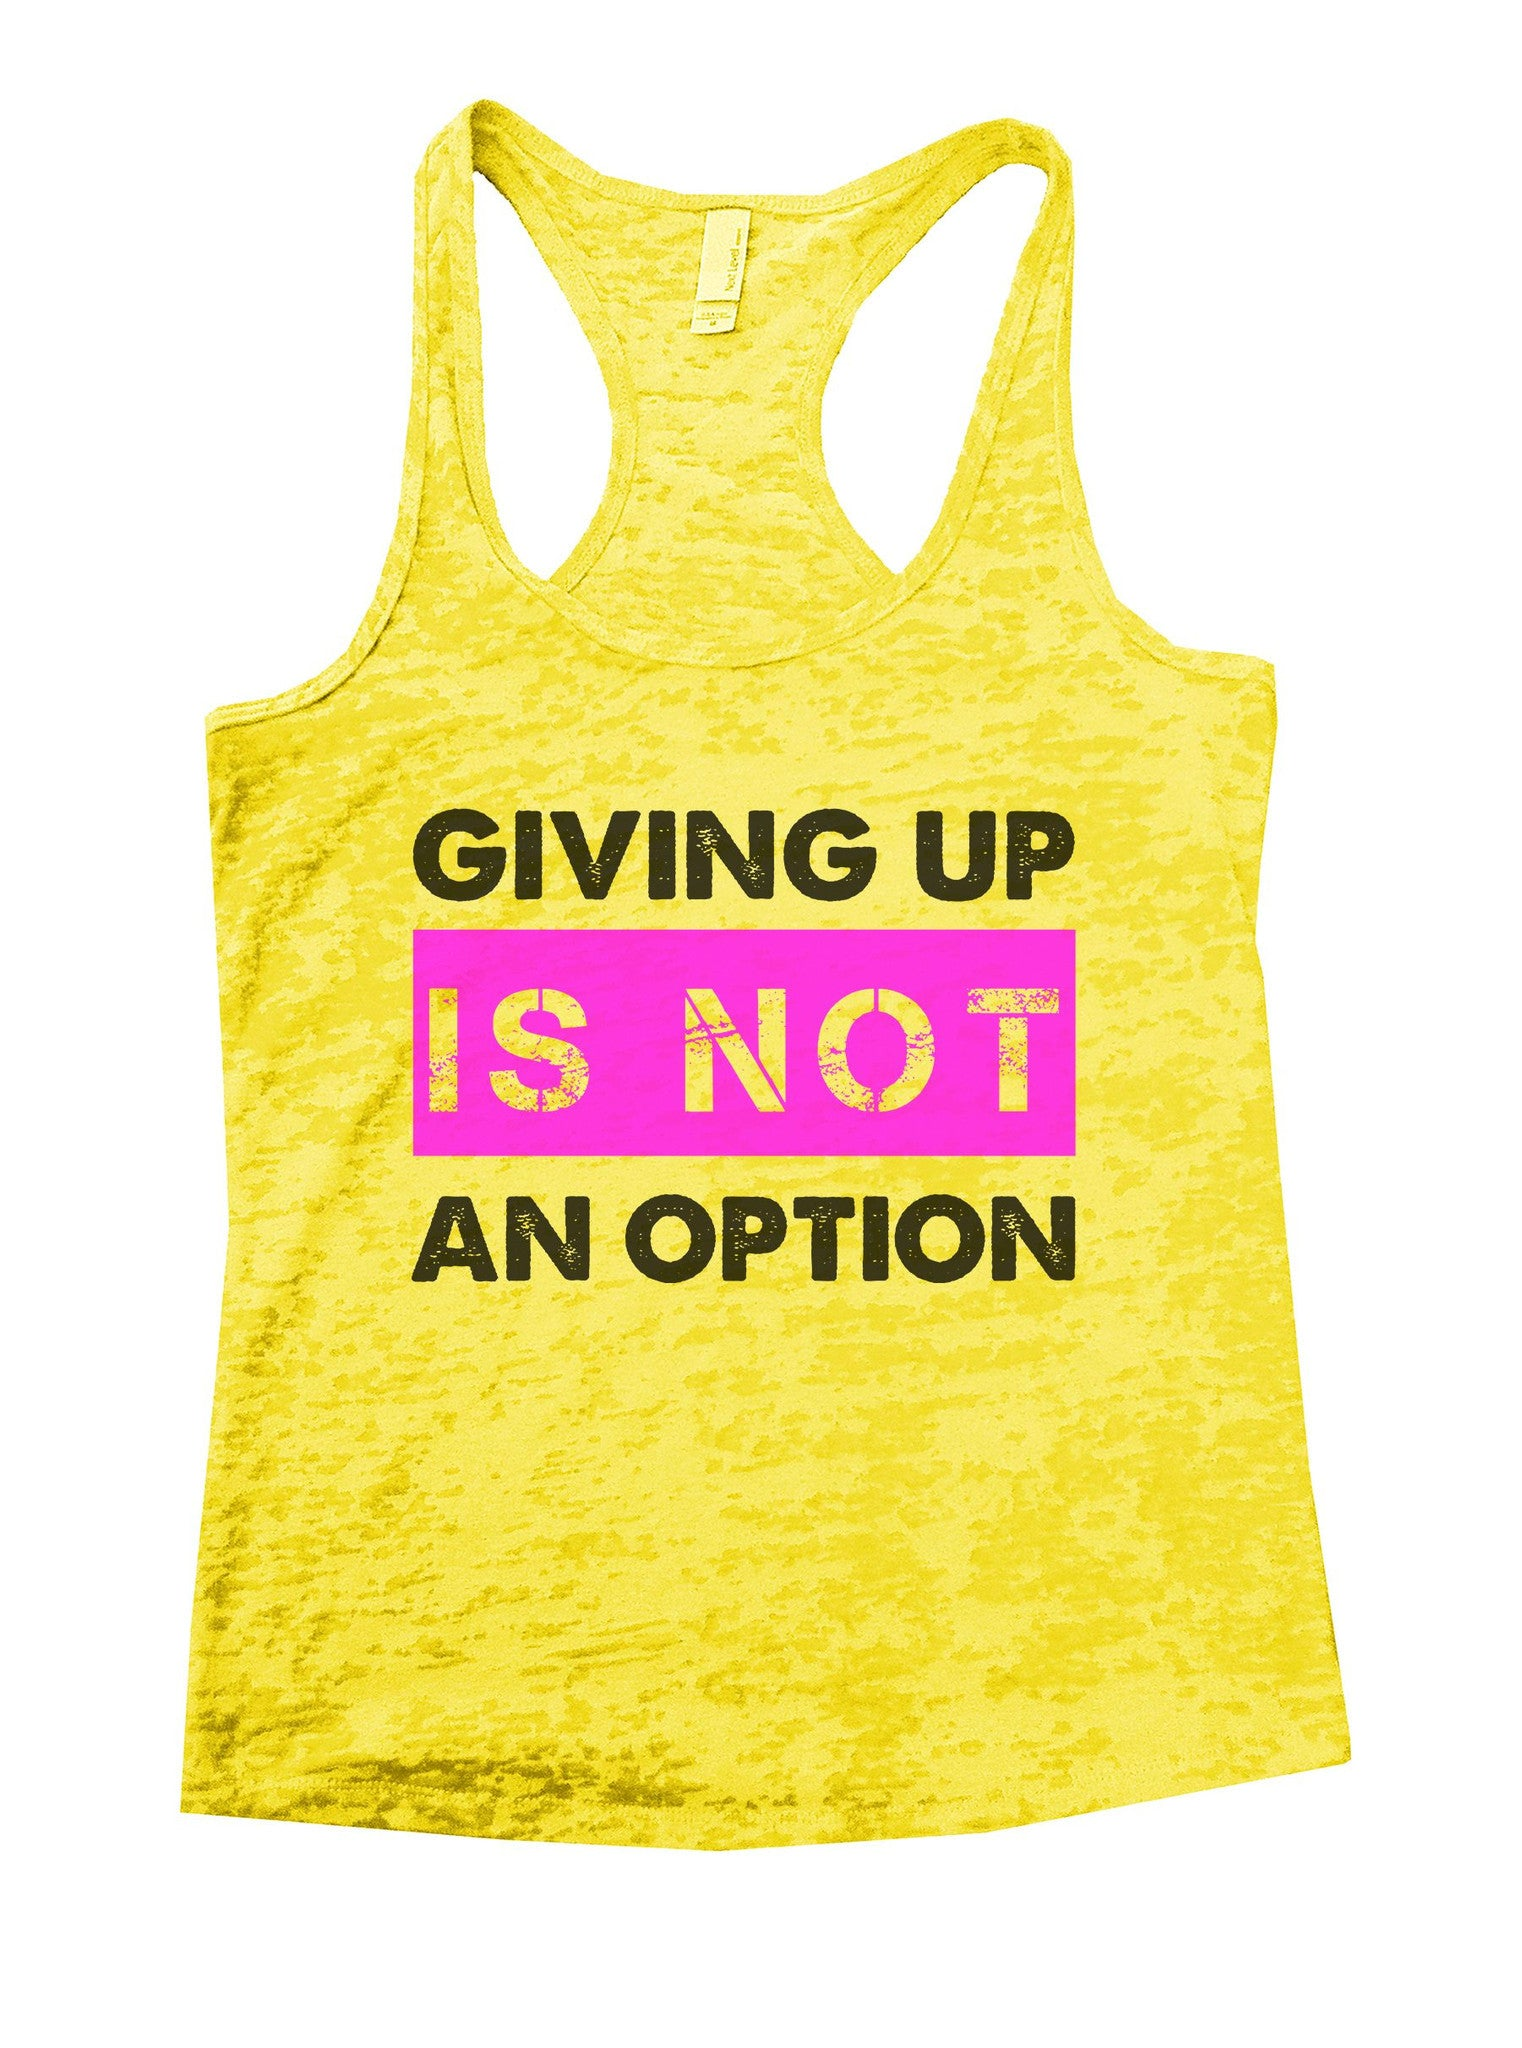 Giving Up Is Not An Option Burnout Tank Top By BurnoutTankTops.com - 844 - Funny Shirts Tank Tops Burnouts and Triblends  - 7